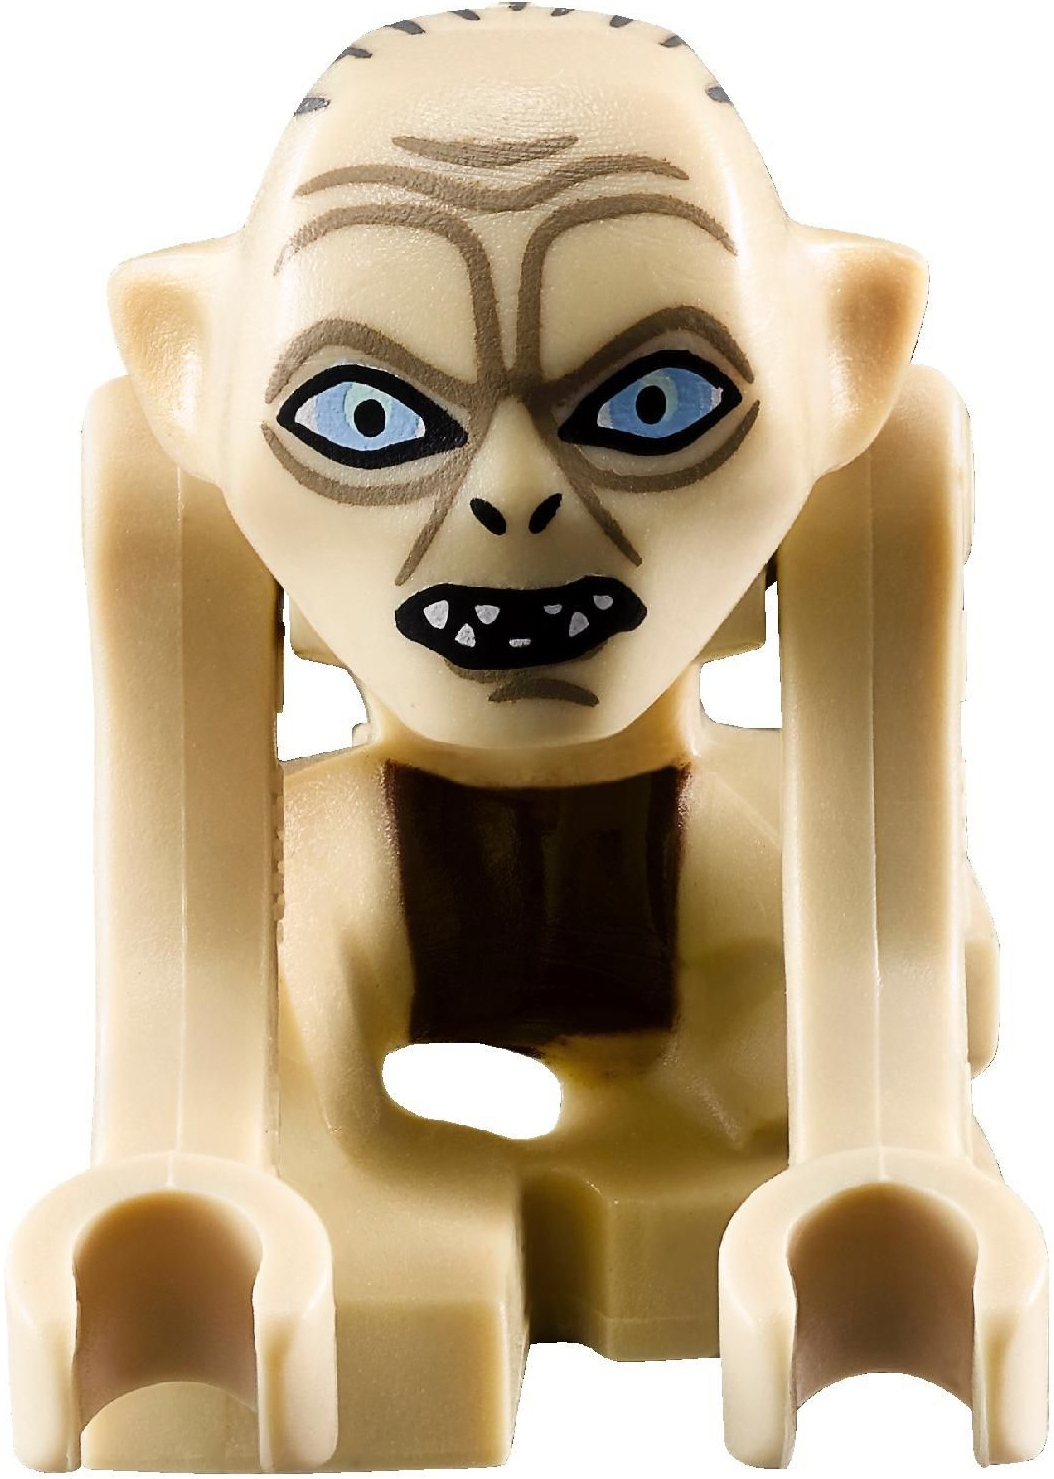 LEGO LORD OF THE RINGS HOBBIT GOLLUM